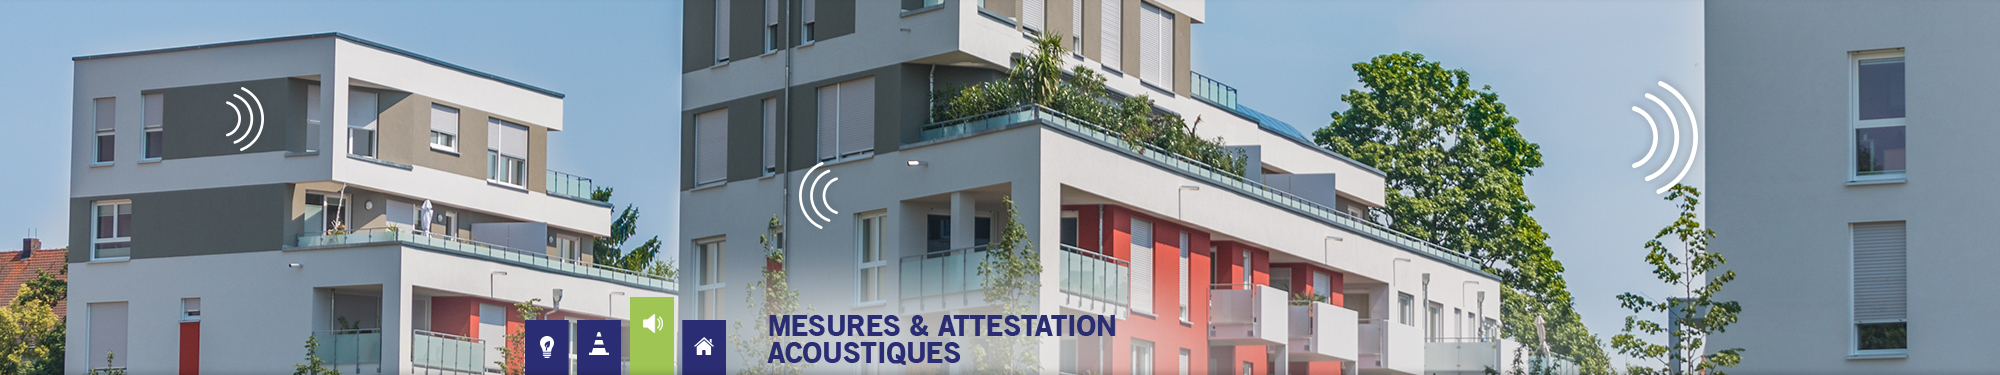 Diagnostic immobilier Tournefeuille